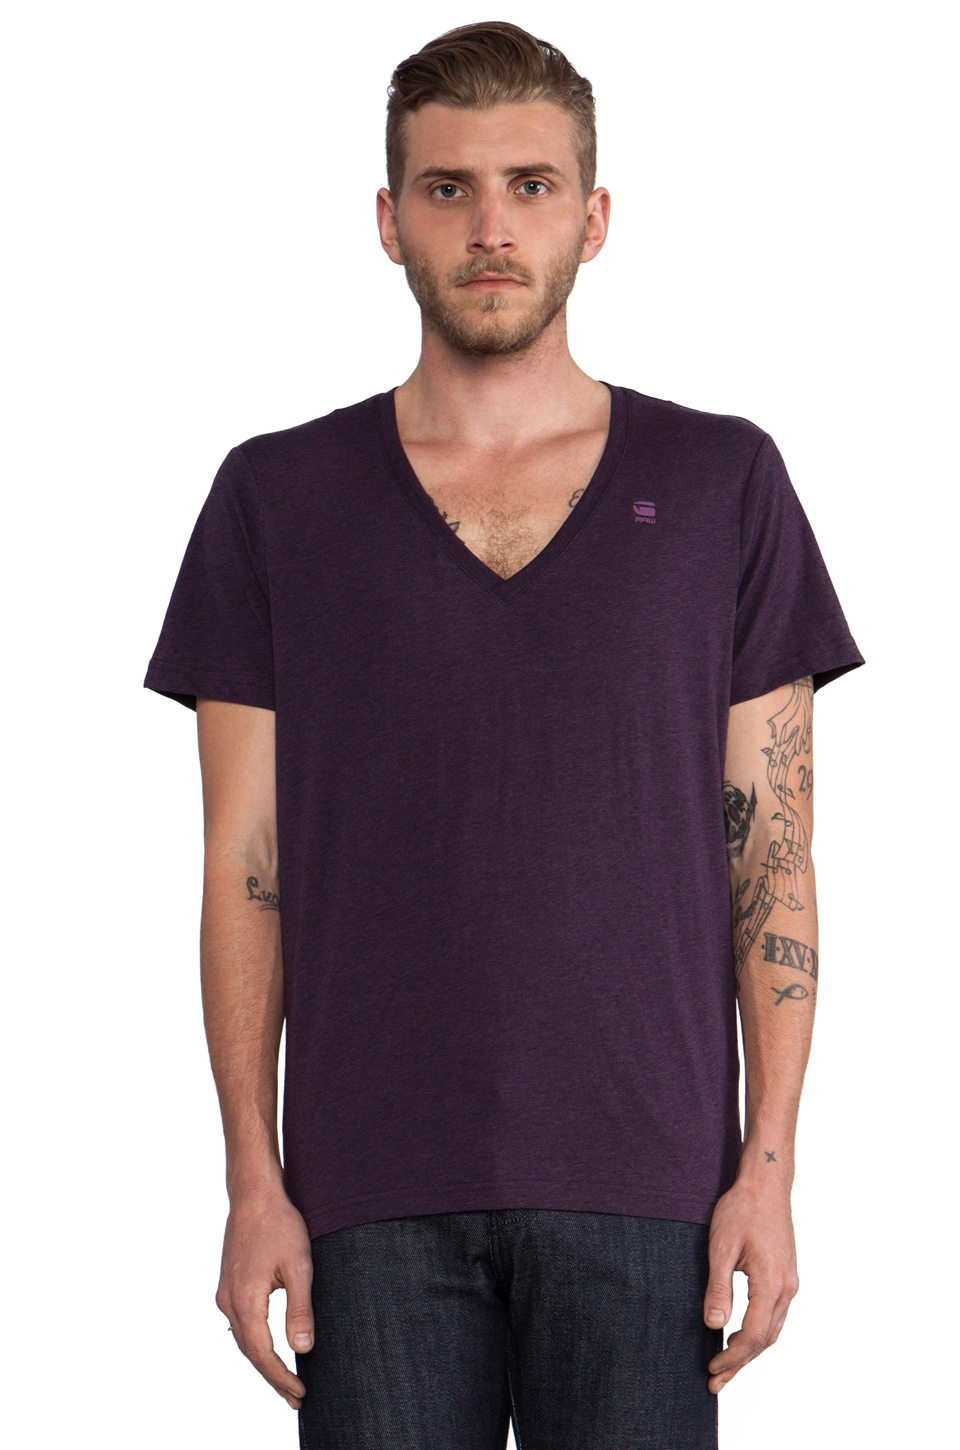 G-Star 2 Pack V-Neck Tees in Aubergine Heather